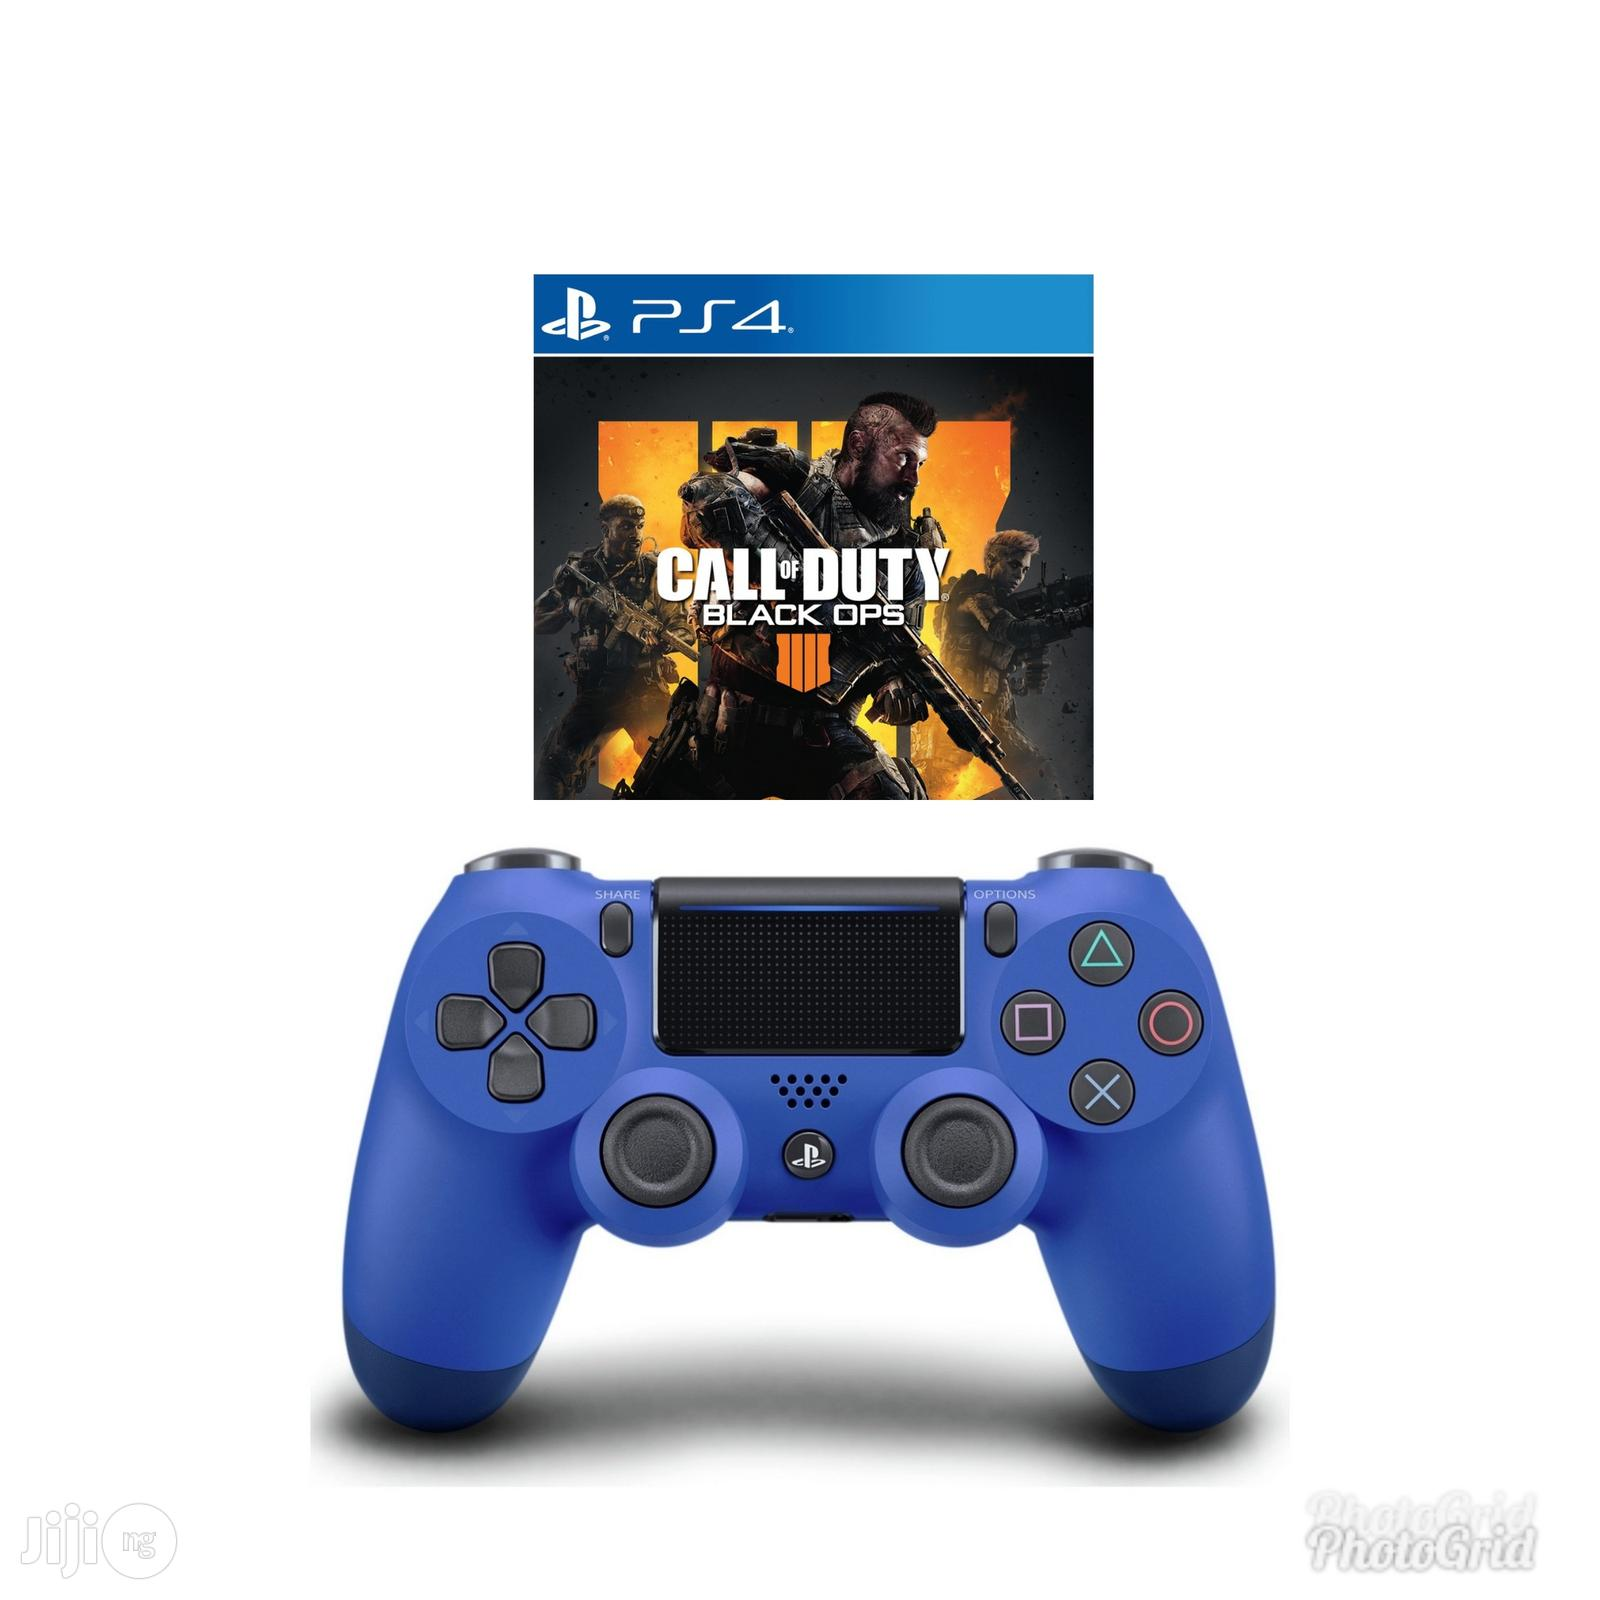 Ps4 Controller Pad + Call Of Duty Black Opps 4 Game